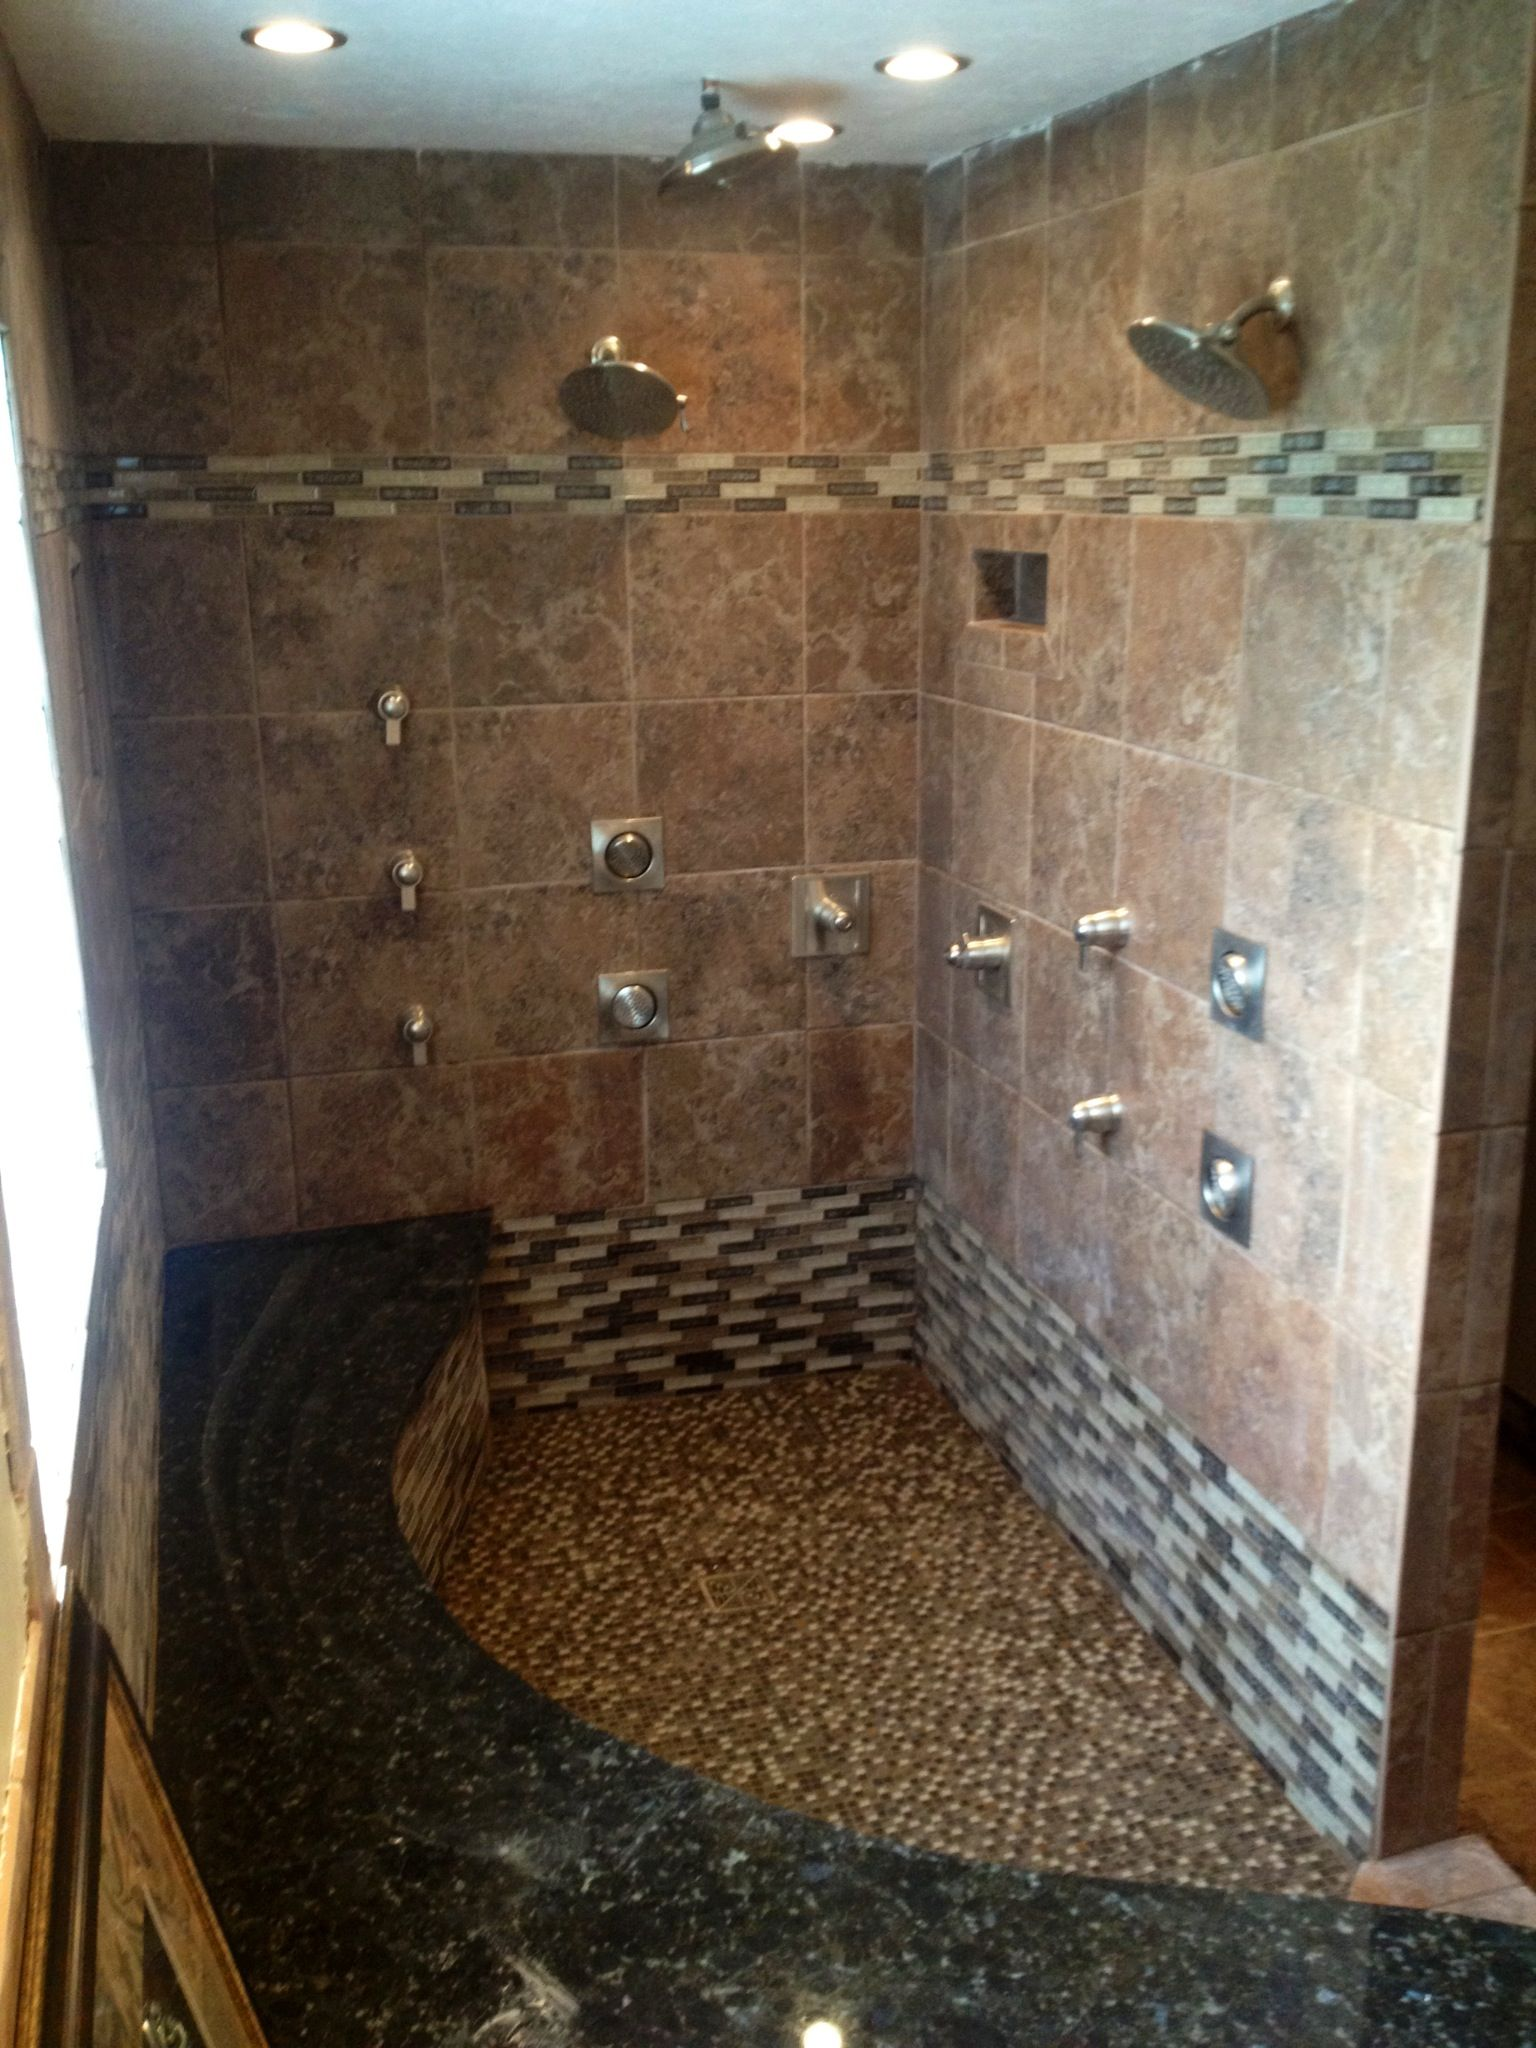 Our new custom master bathroom, complete with a whirlpool 10 jet tub &  custom shower